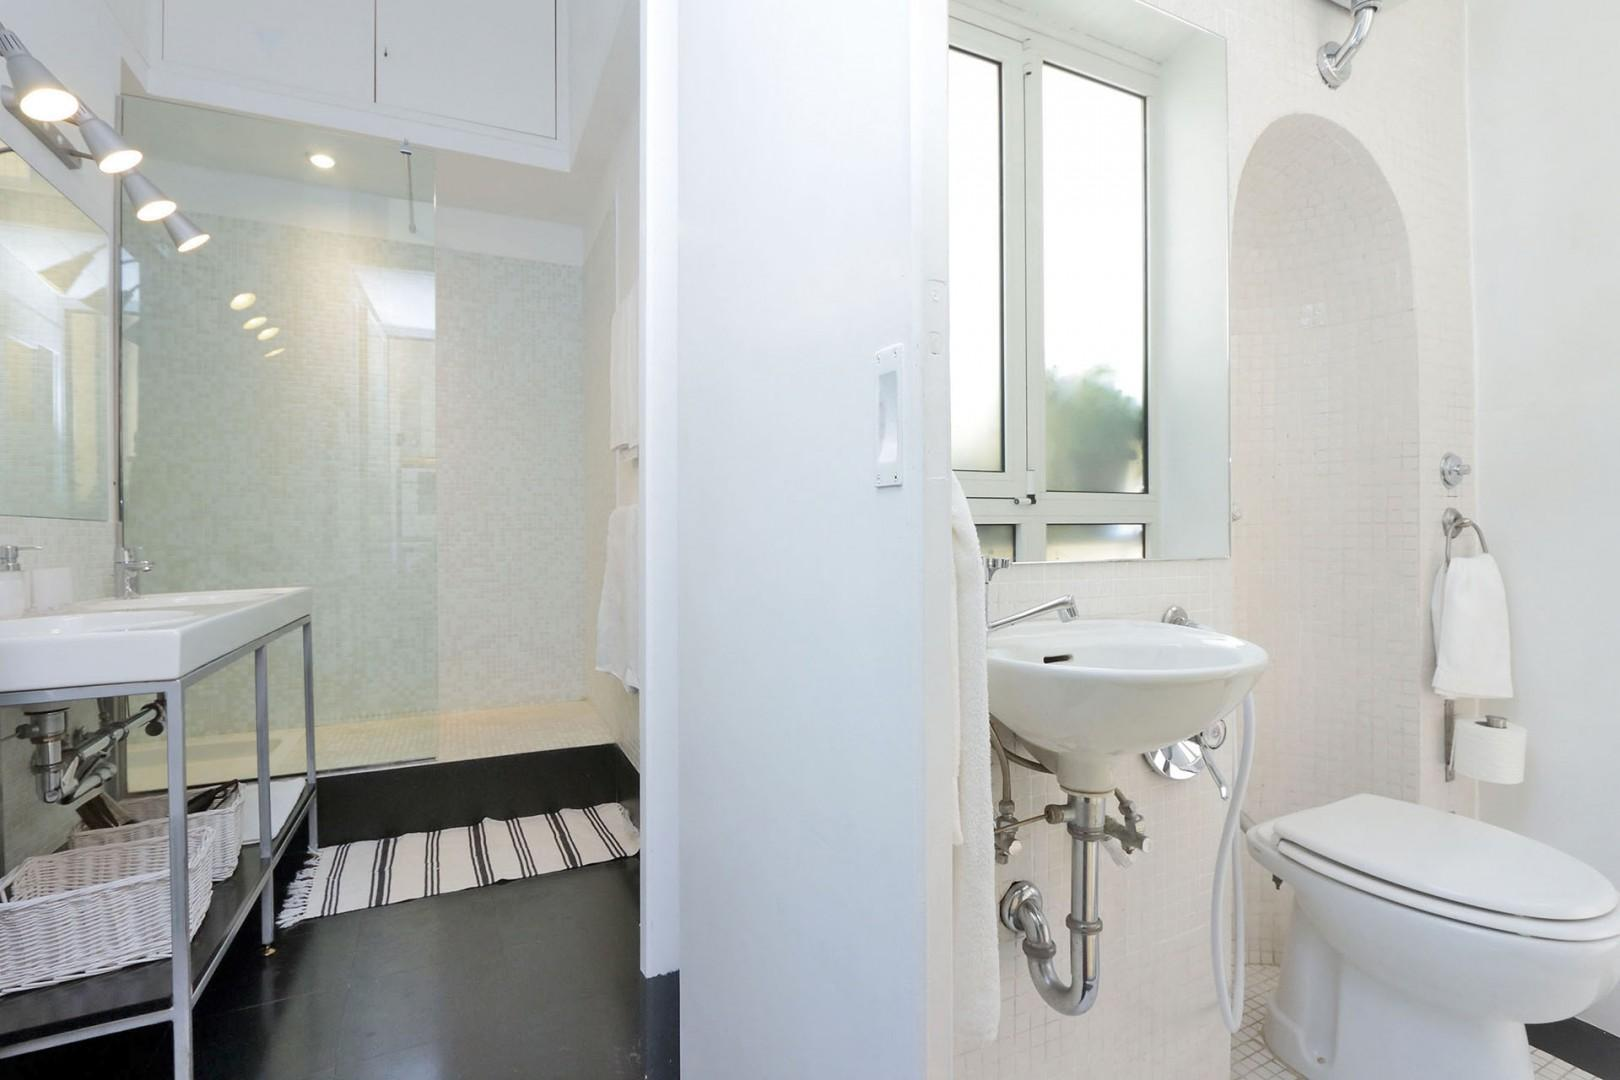 Bathroom 3 has double sinks and a large glassed-in shower. Accessed of the kitchen.